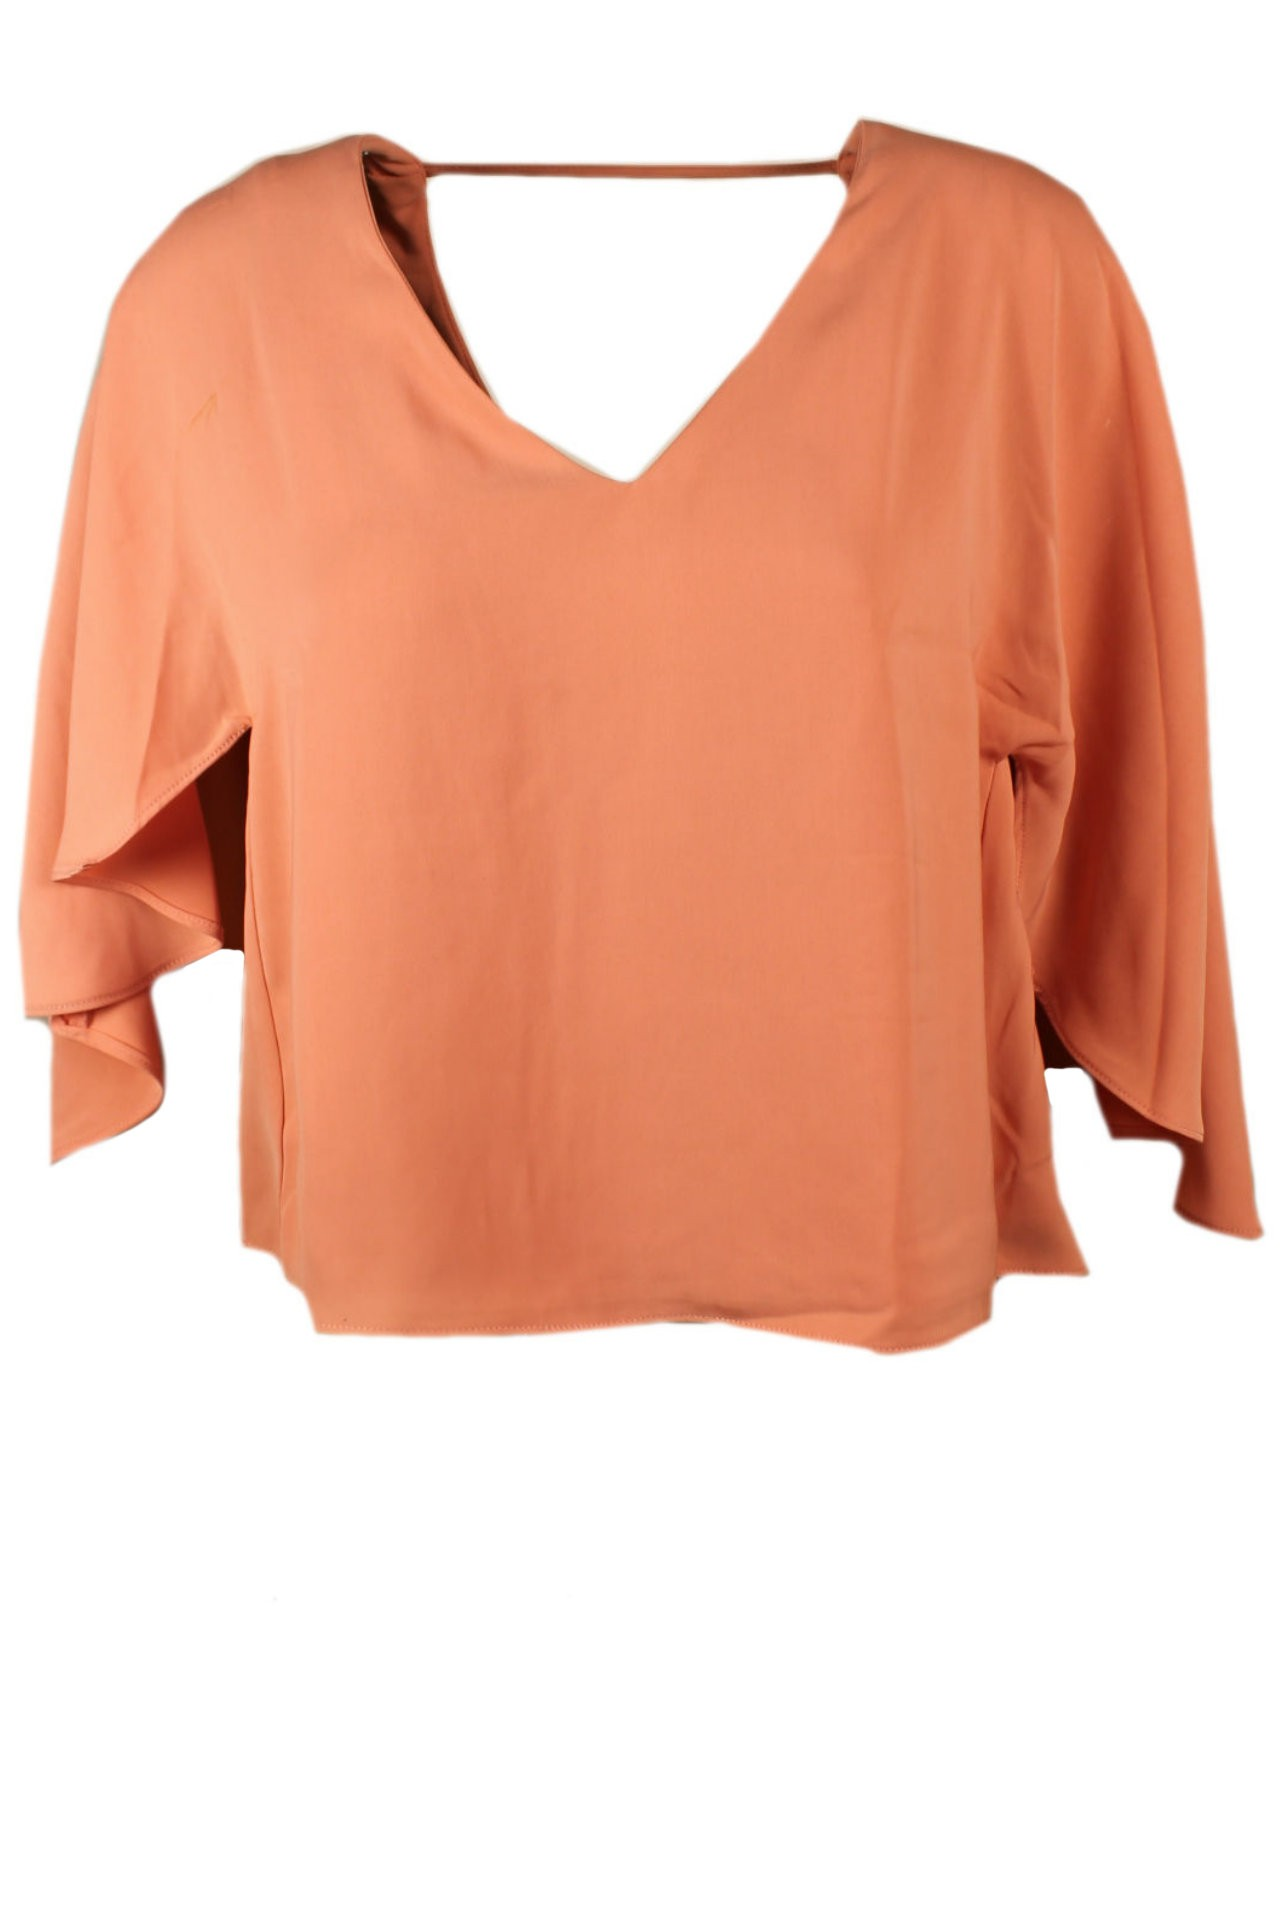 Salmon Colored Blouse